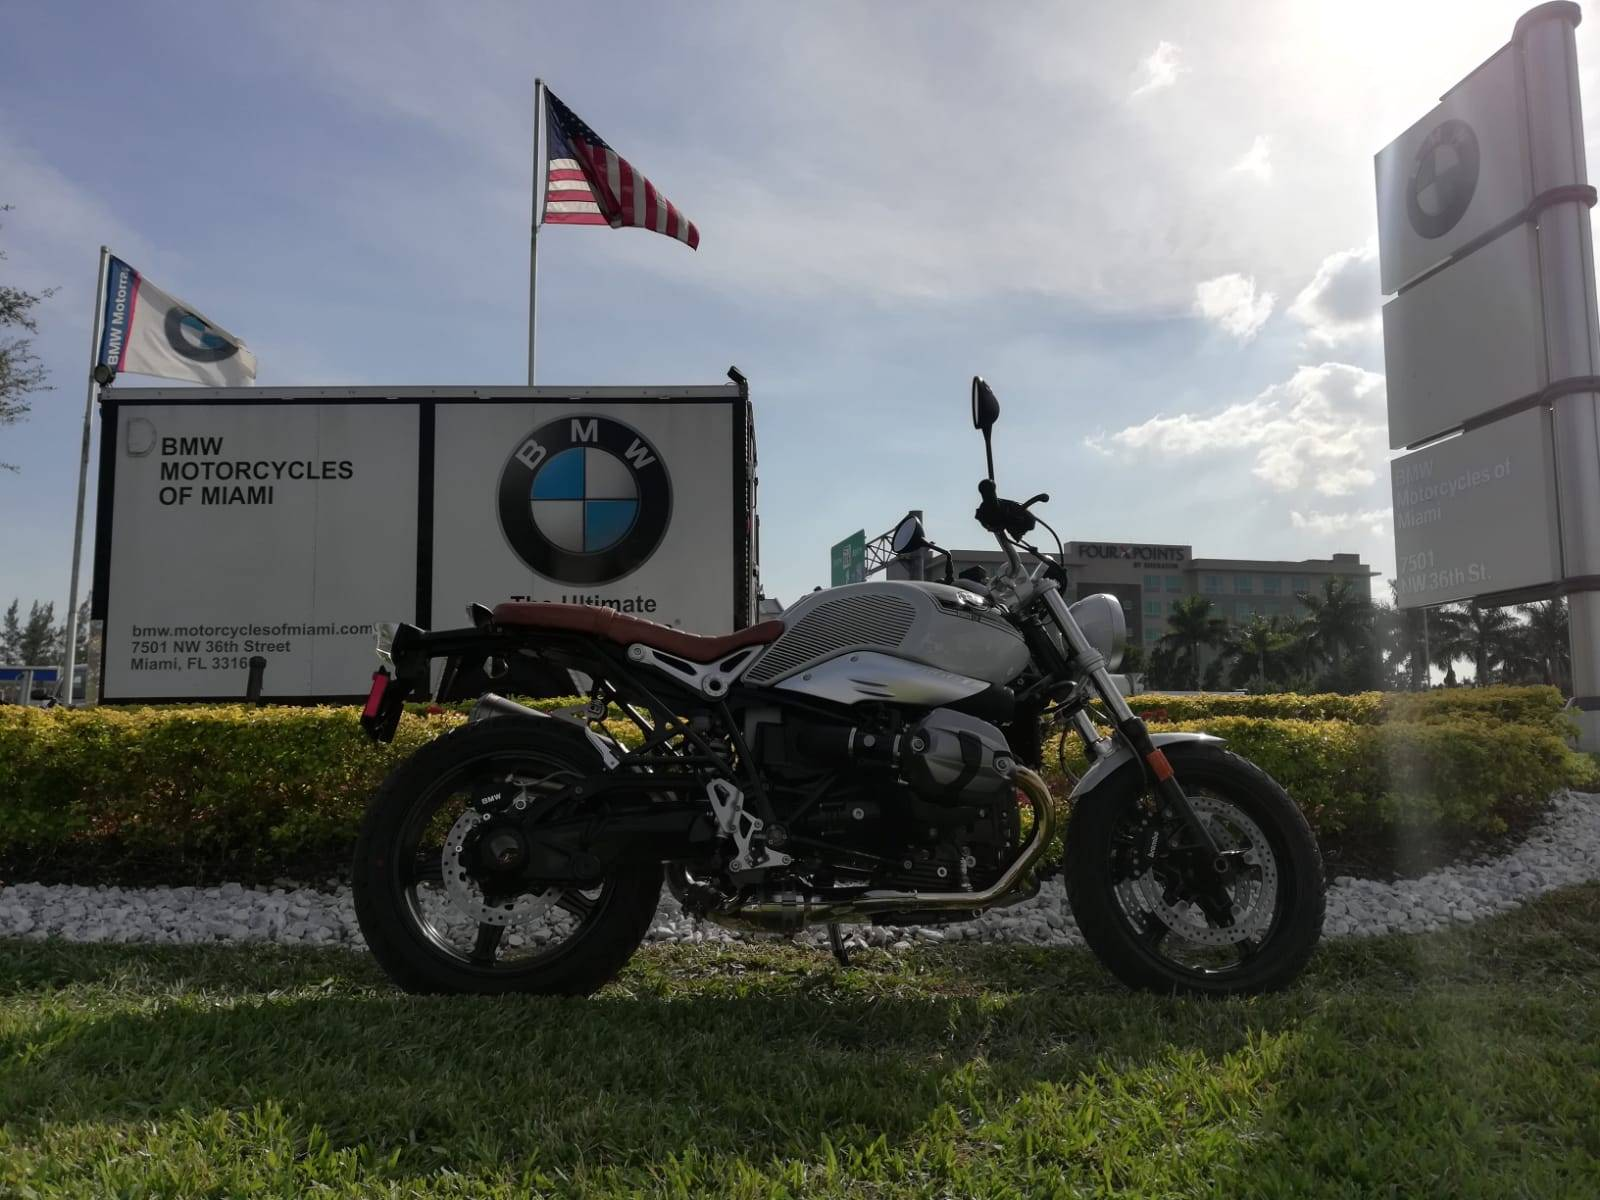 New 2019 BMW R nine T Scrambler for sale, BMW Scrambler for sale, BMW Motorcycle Scrambler, Scrambler, BMW Motorcycles of Miami, Motorcycles of Miami, Motorcycles Miami, New Motorcycles, Used Motorcycles, pre-owned. #BMWMotorcyclesOfMiami #MotorcyclesOfMiami. - Photo 18